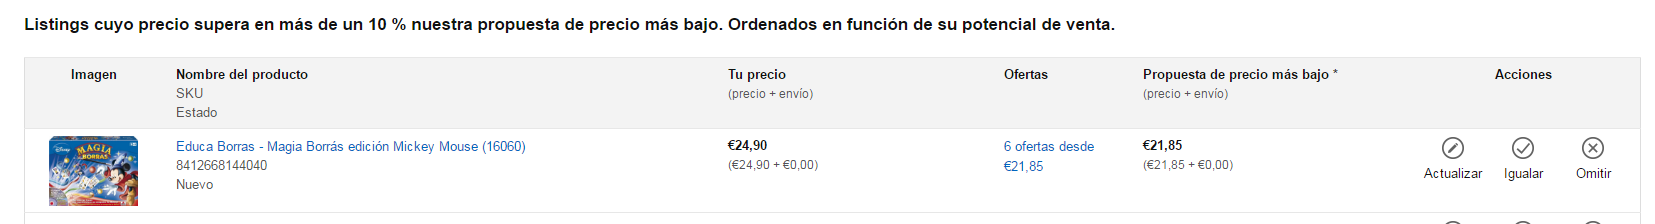 Amazon propuestas de pricing